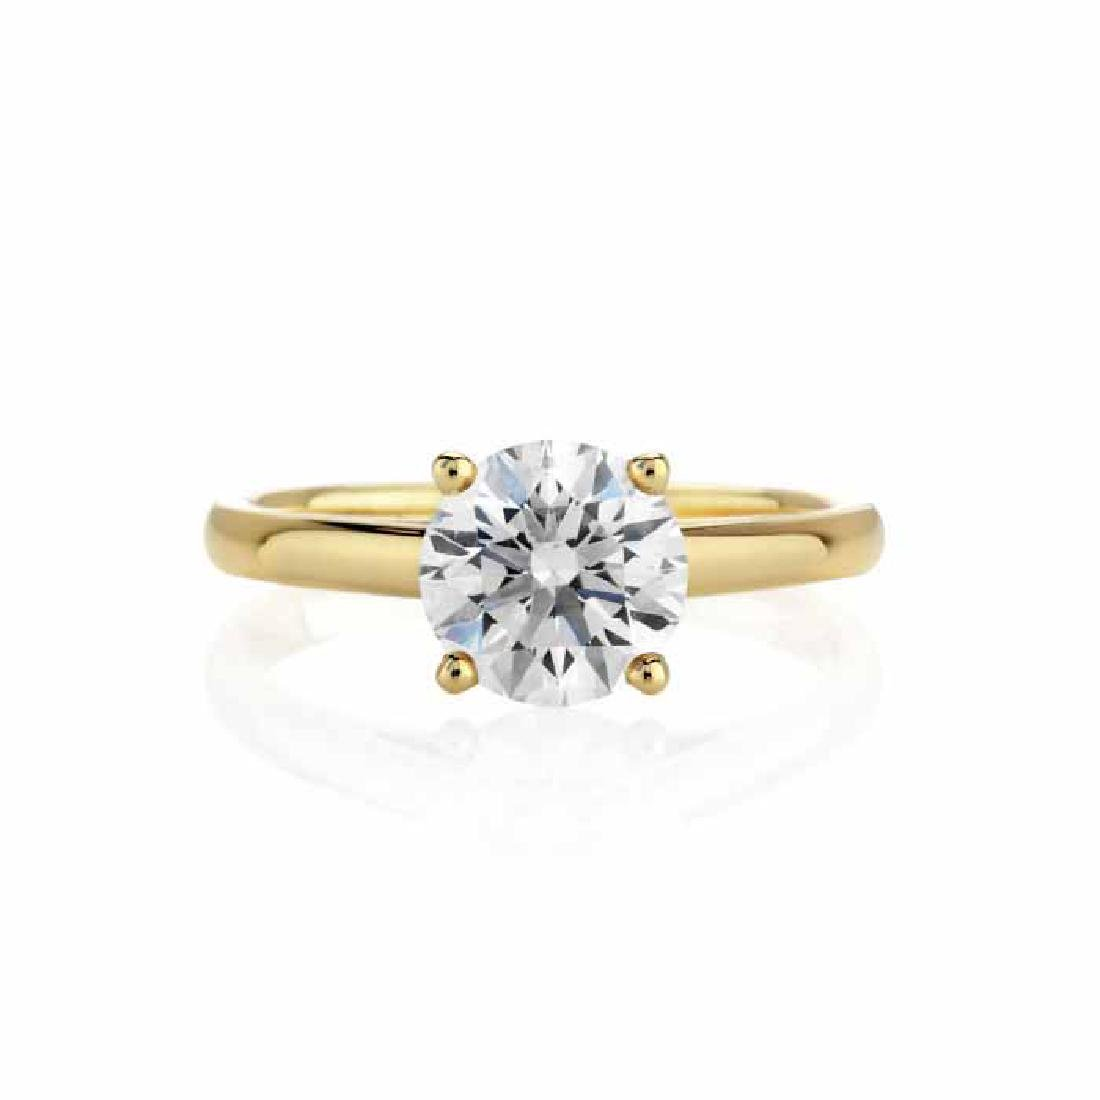 CERTIFIED 0.4 CTW D/VS1 ROUND DIAMOND SOLITAIRE RING IN